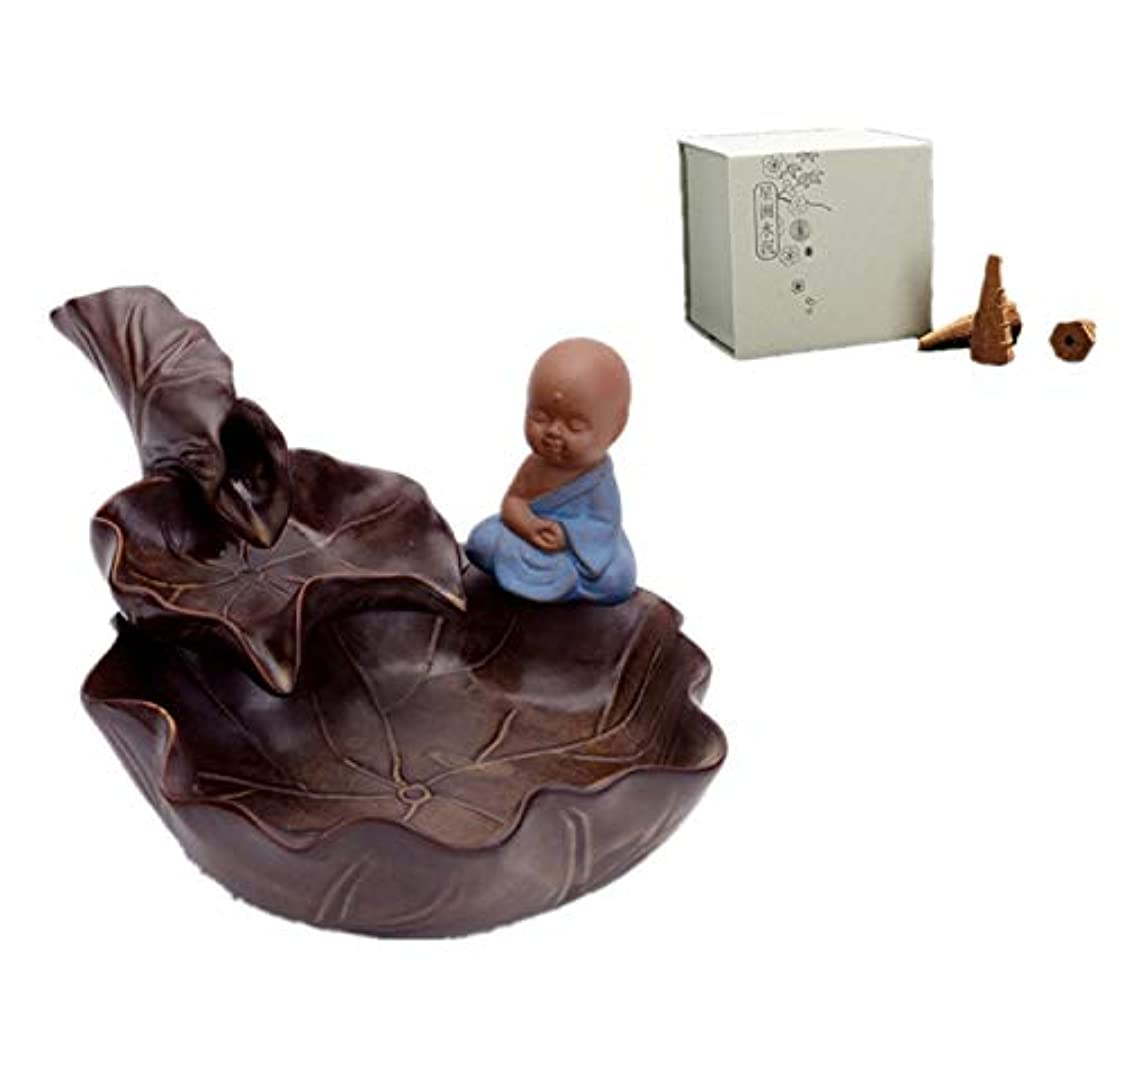 マッサージキャロライン知覚XPPXPP Reflux Incense Burner With 40 Reflux Cones, Household Ceramic Reflux Cone-Shaped Candlestick Burner